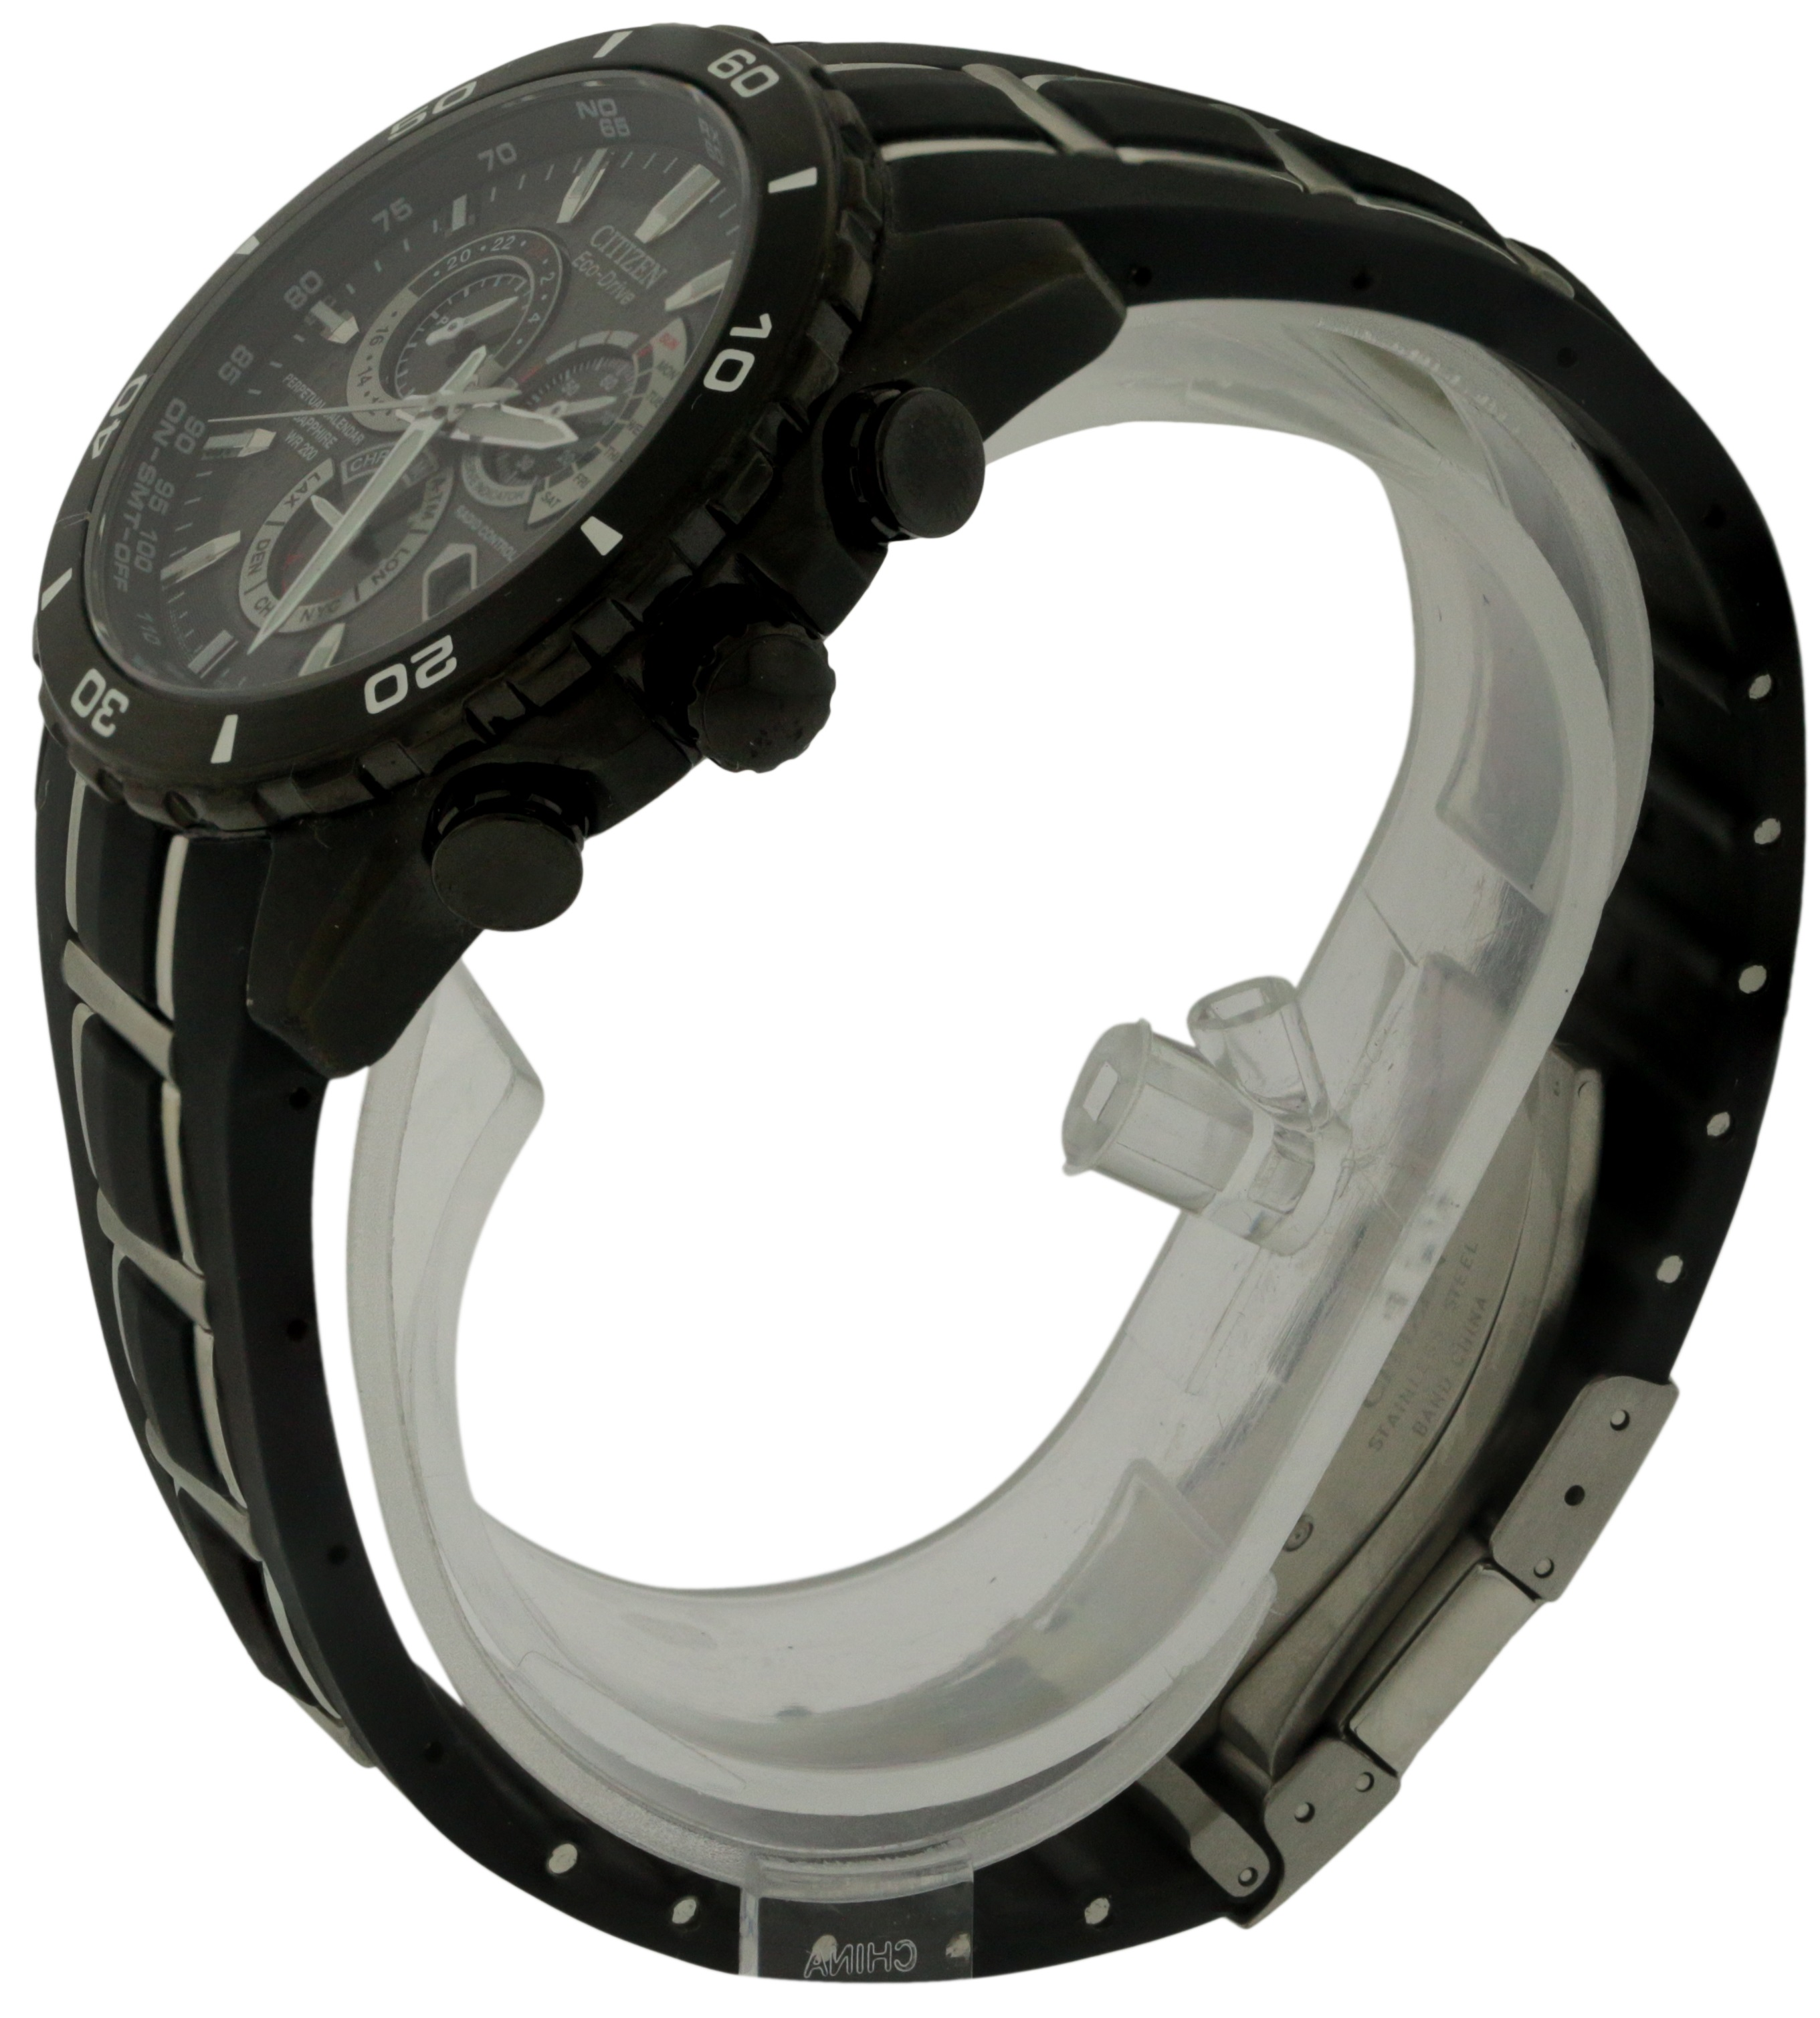 8e86a757d Citizen Eco-Drive Limited Perpetual Chrono Atomic A-T Mens Watch  AT4027-06E, Solar Time Inc